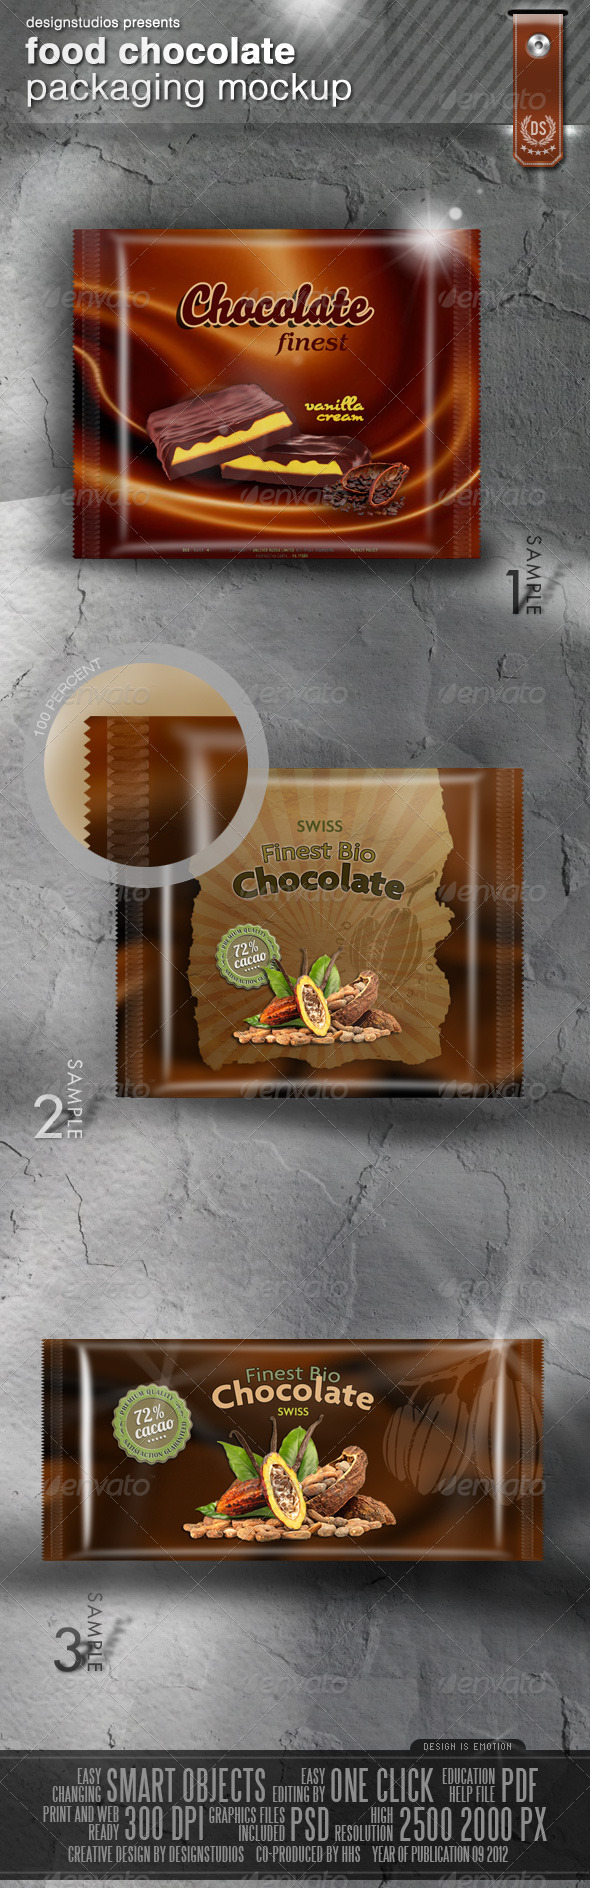 Food (Chocolate) Packaging Mock-Up